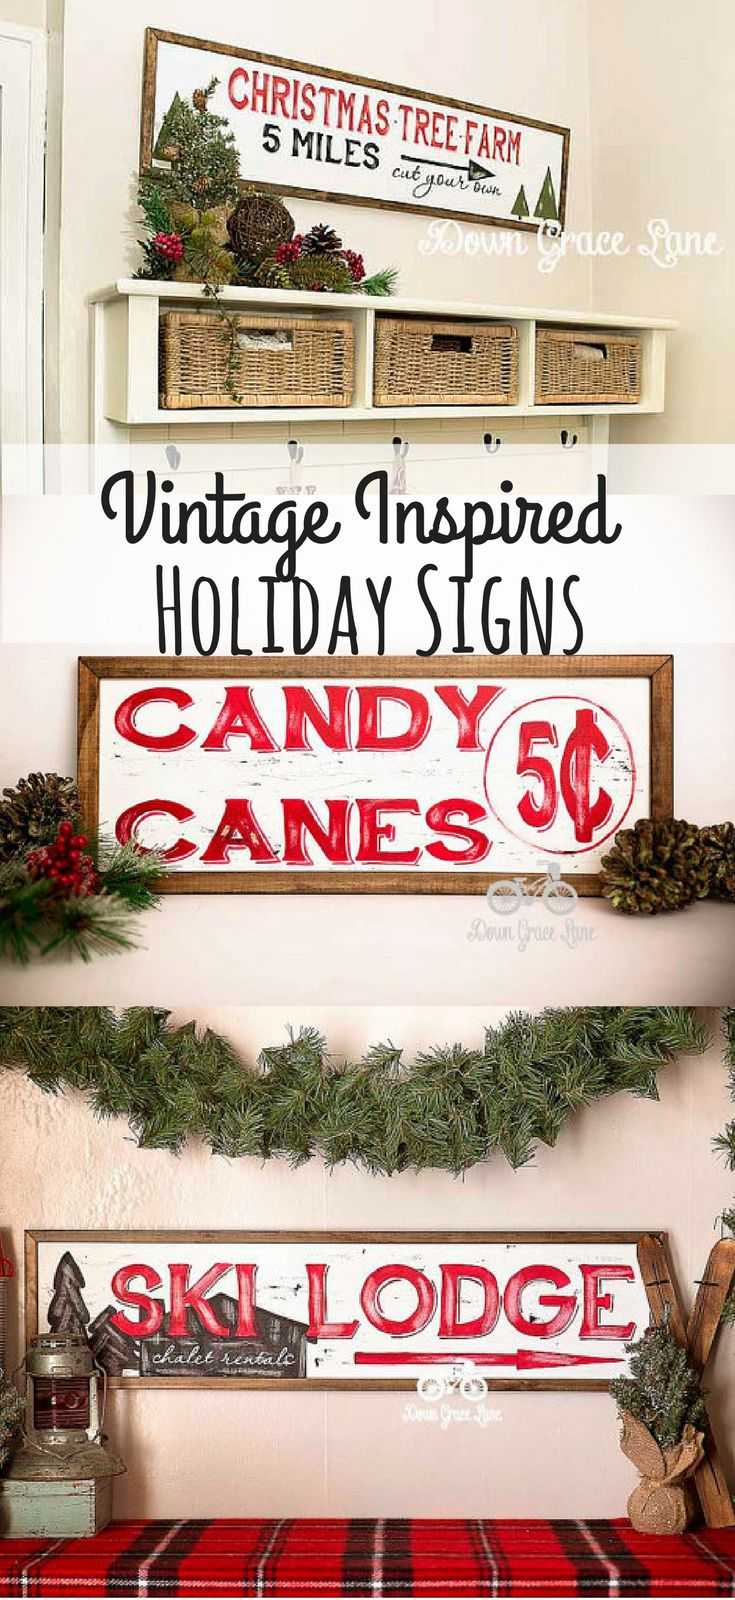 Christmas wooden christmas memories hanging sign sold out - Hand Painted Framed Vintage Inspired Holiday Signs Christmas Ad Sign Wood